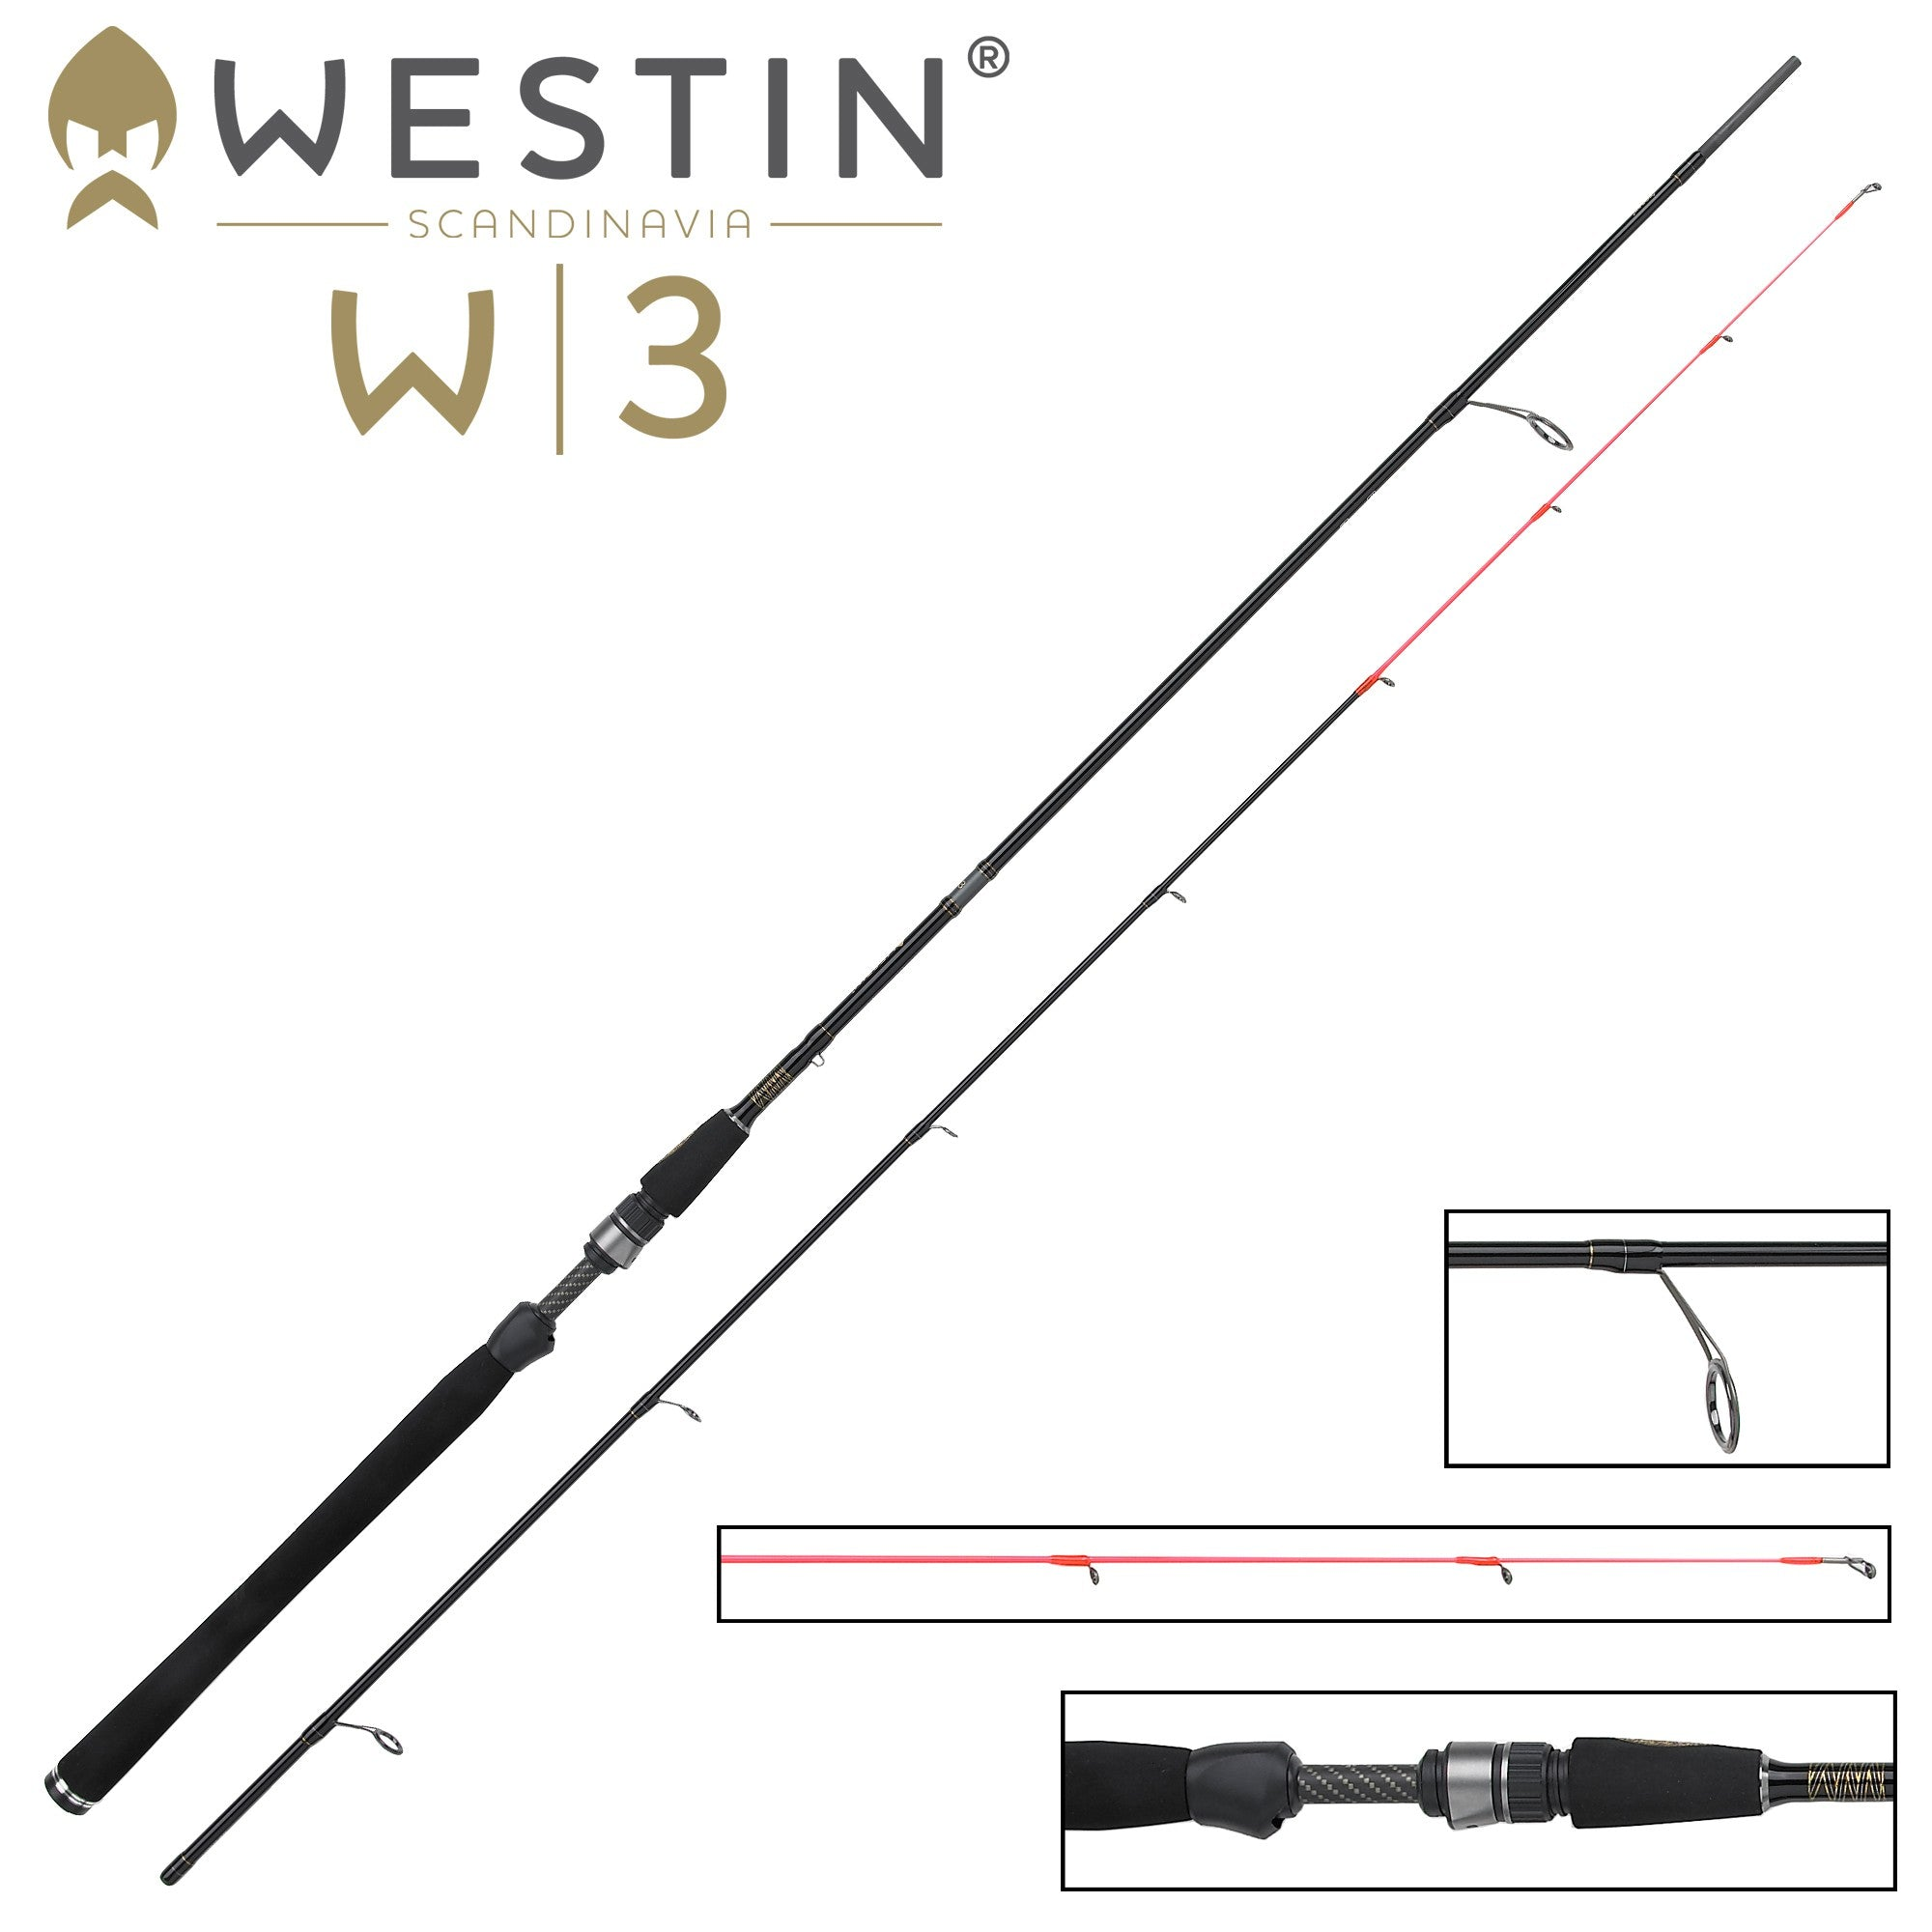 Westin W3 Finesse Jig Rod - The Lure Box